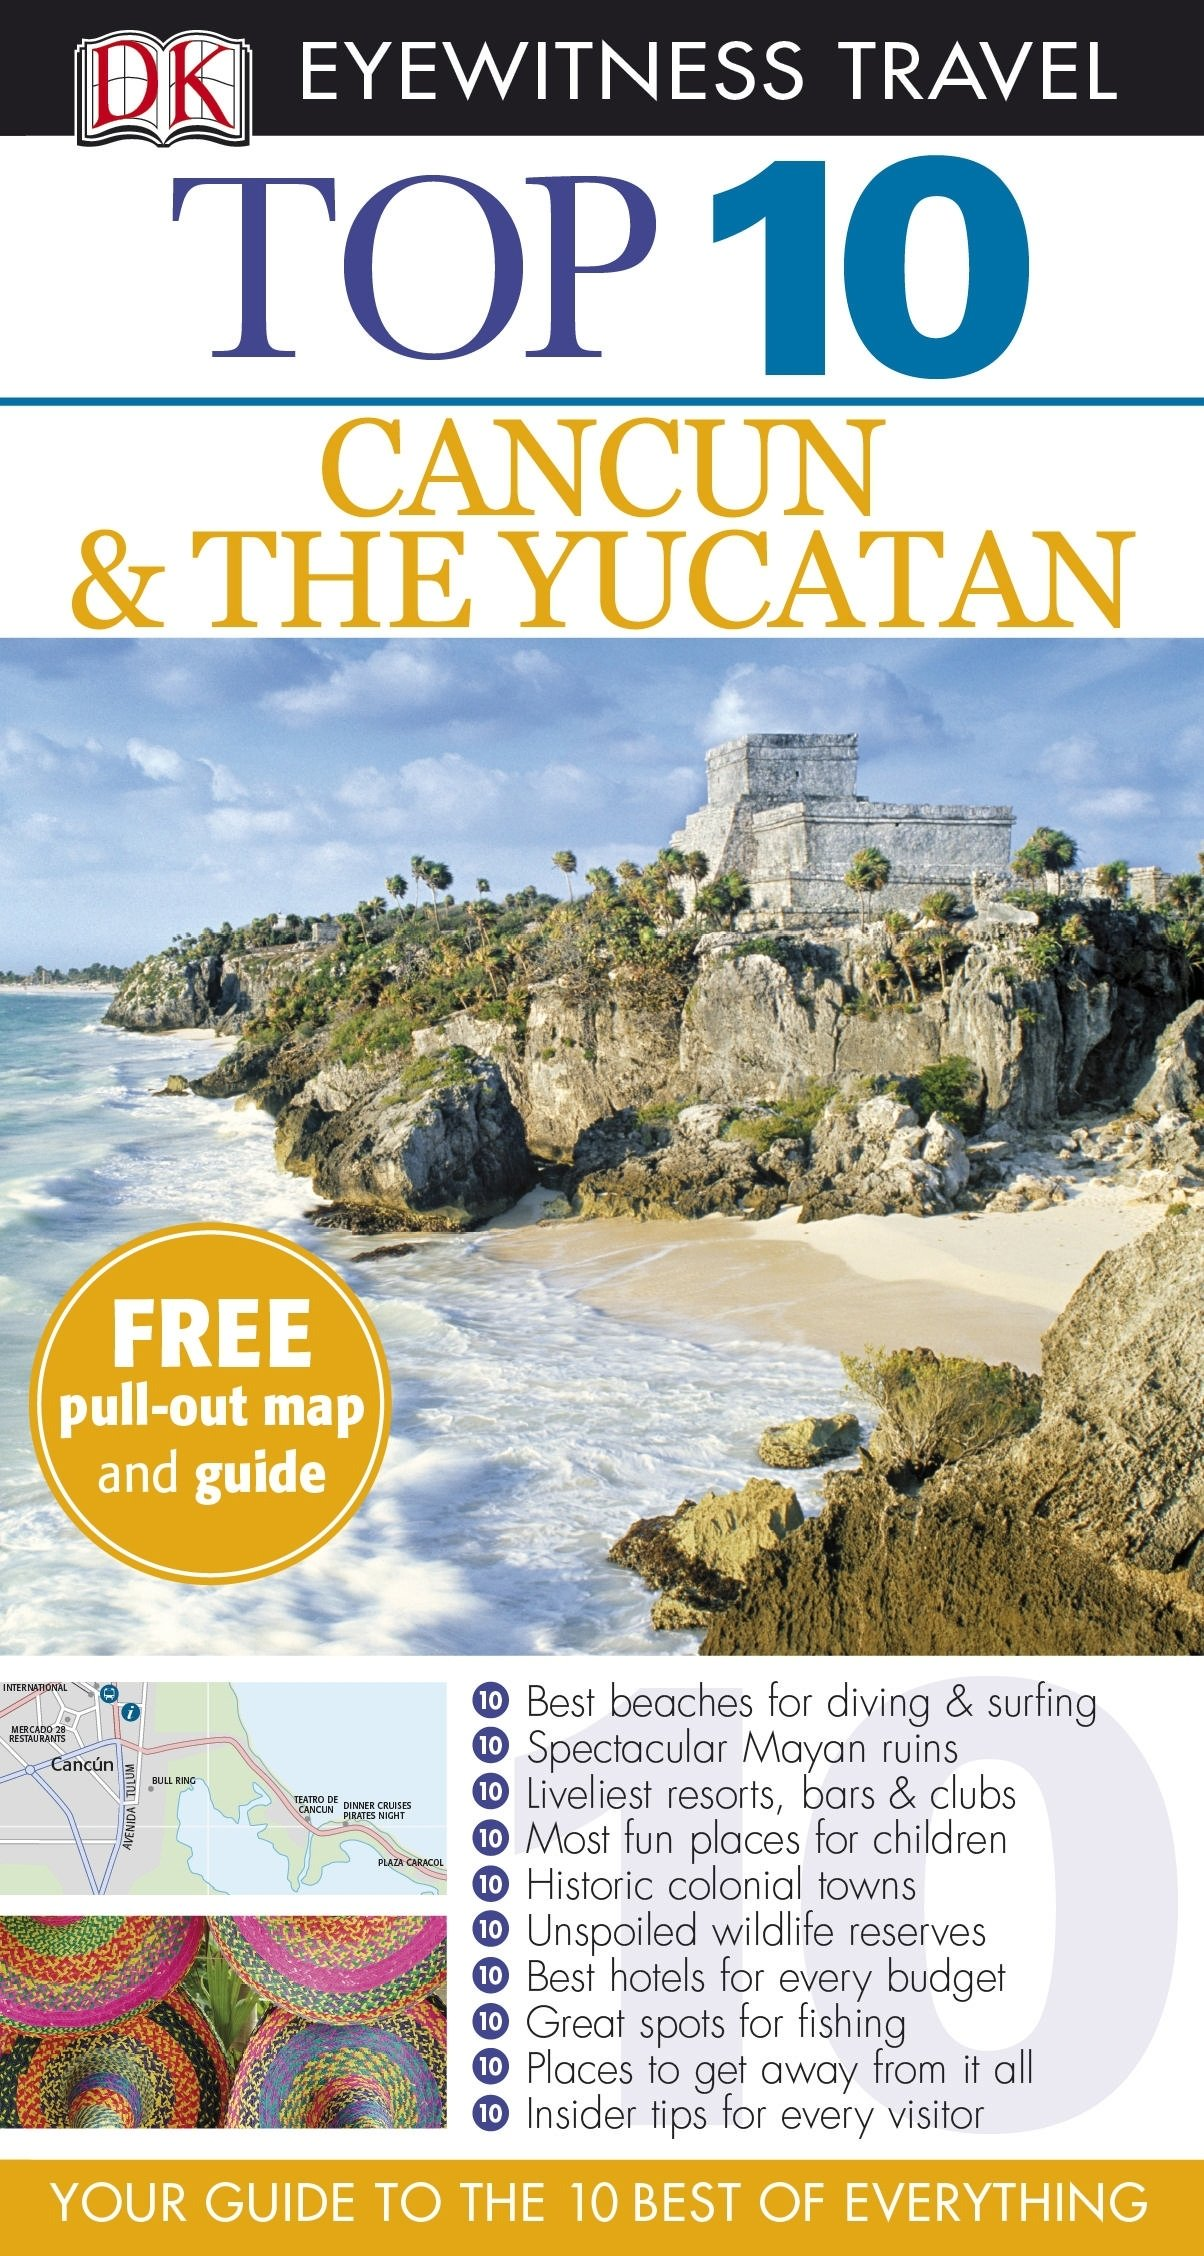 DK Eyewitness Top 10 Travel Guide: Cancun & The Yucatan (DK Eyewitness Travel Guide)